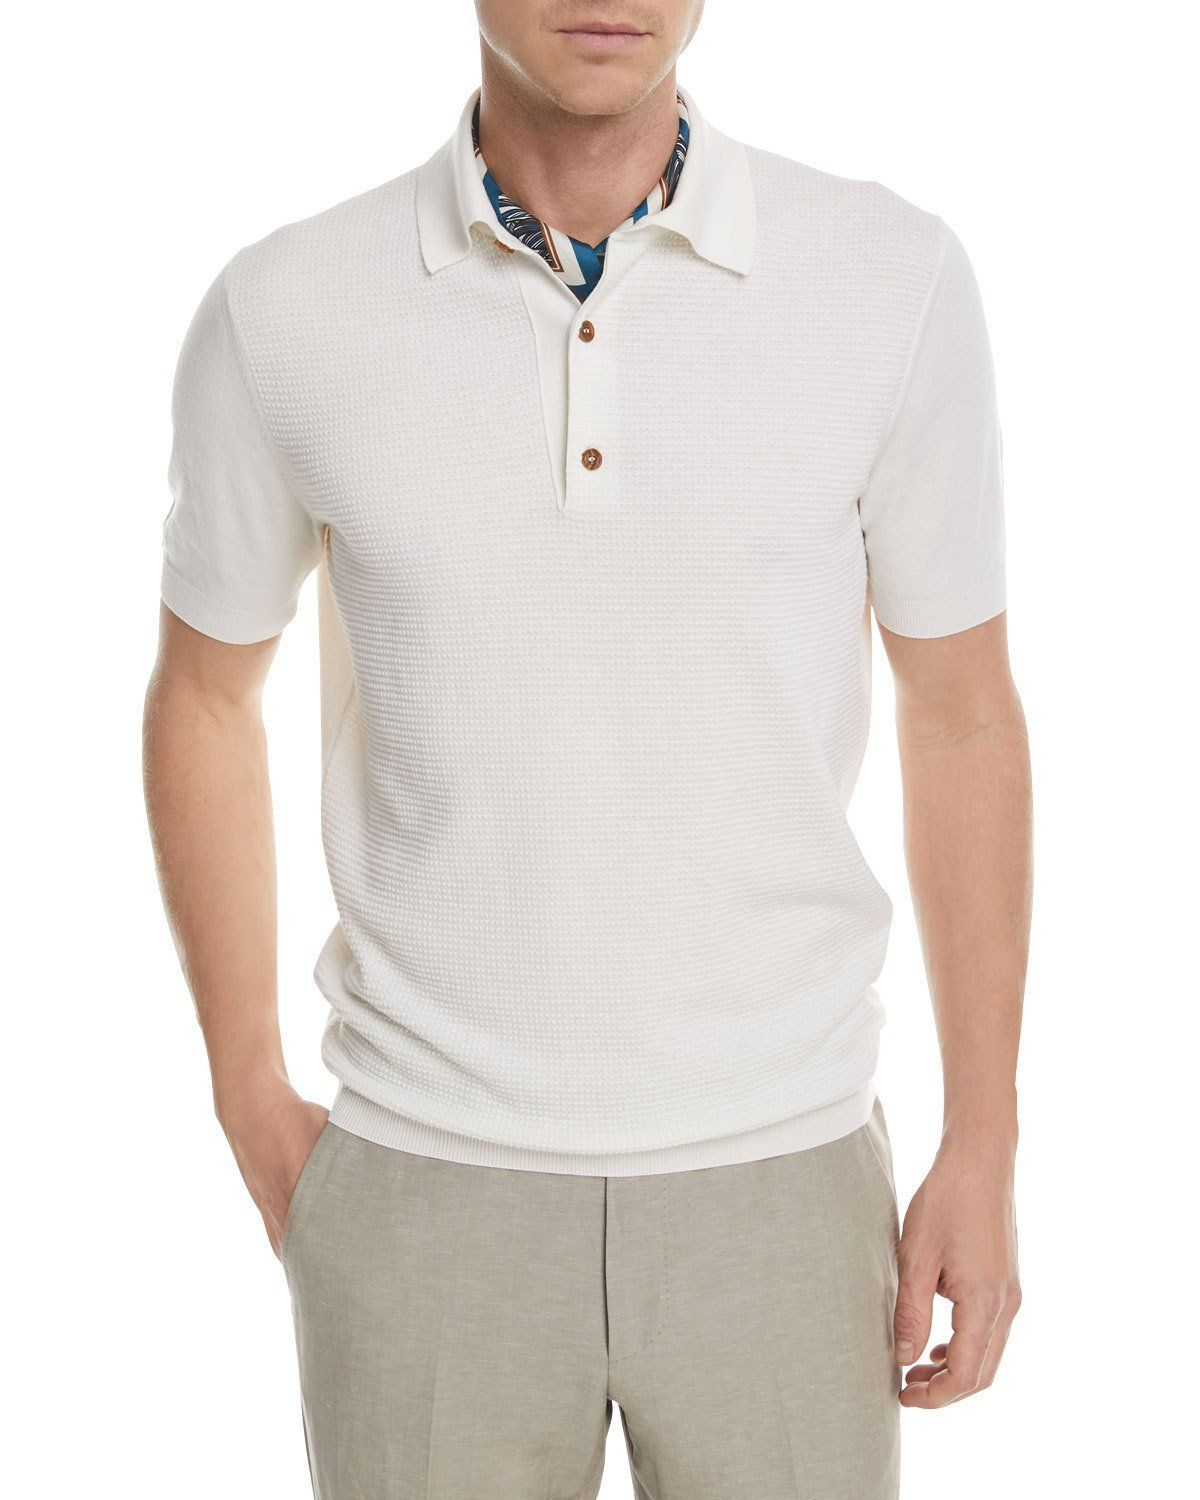 ff2a2fdc Z Zegna Textured-Knit Polo Shirt | Products | Polo shirt, Sports ...